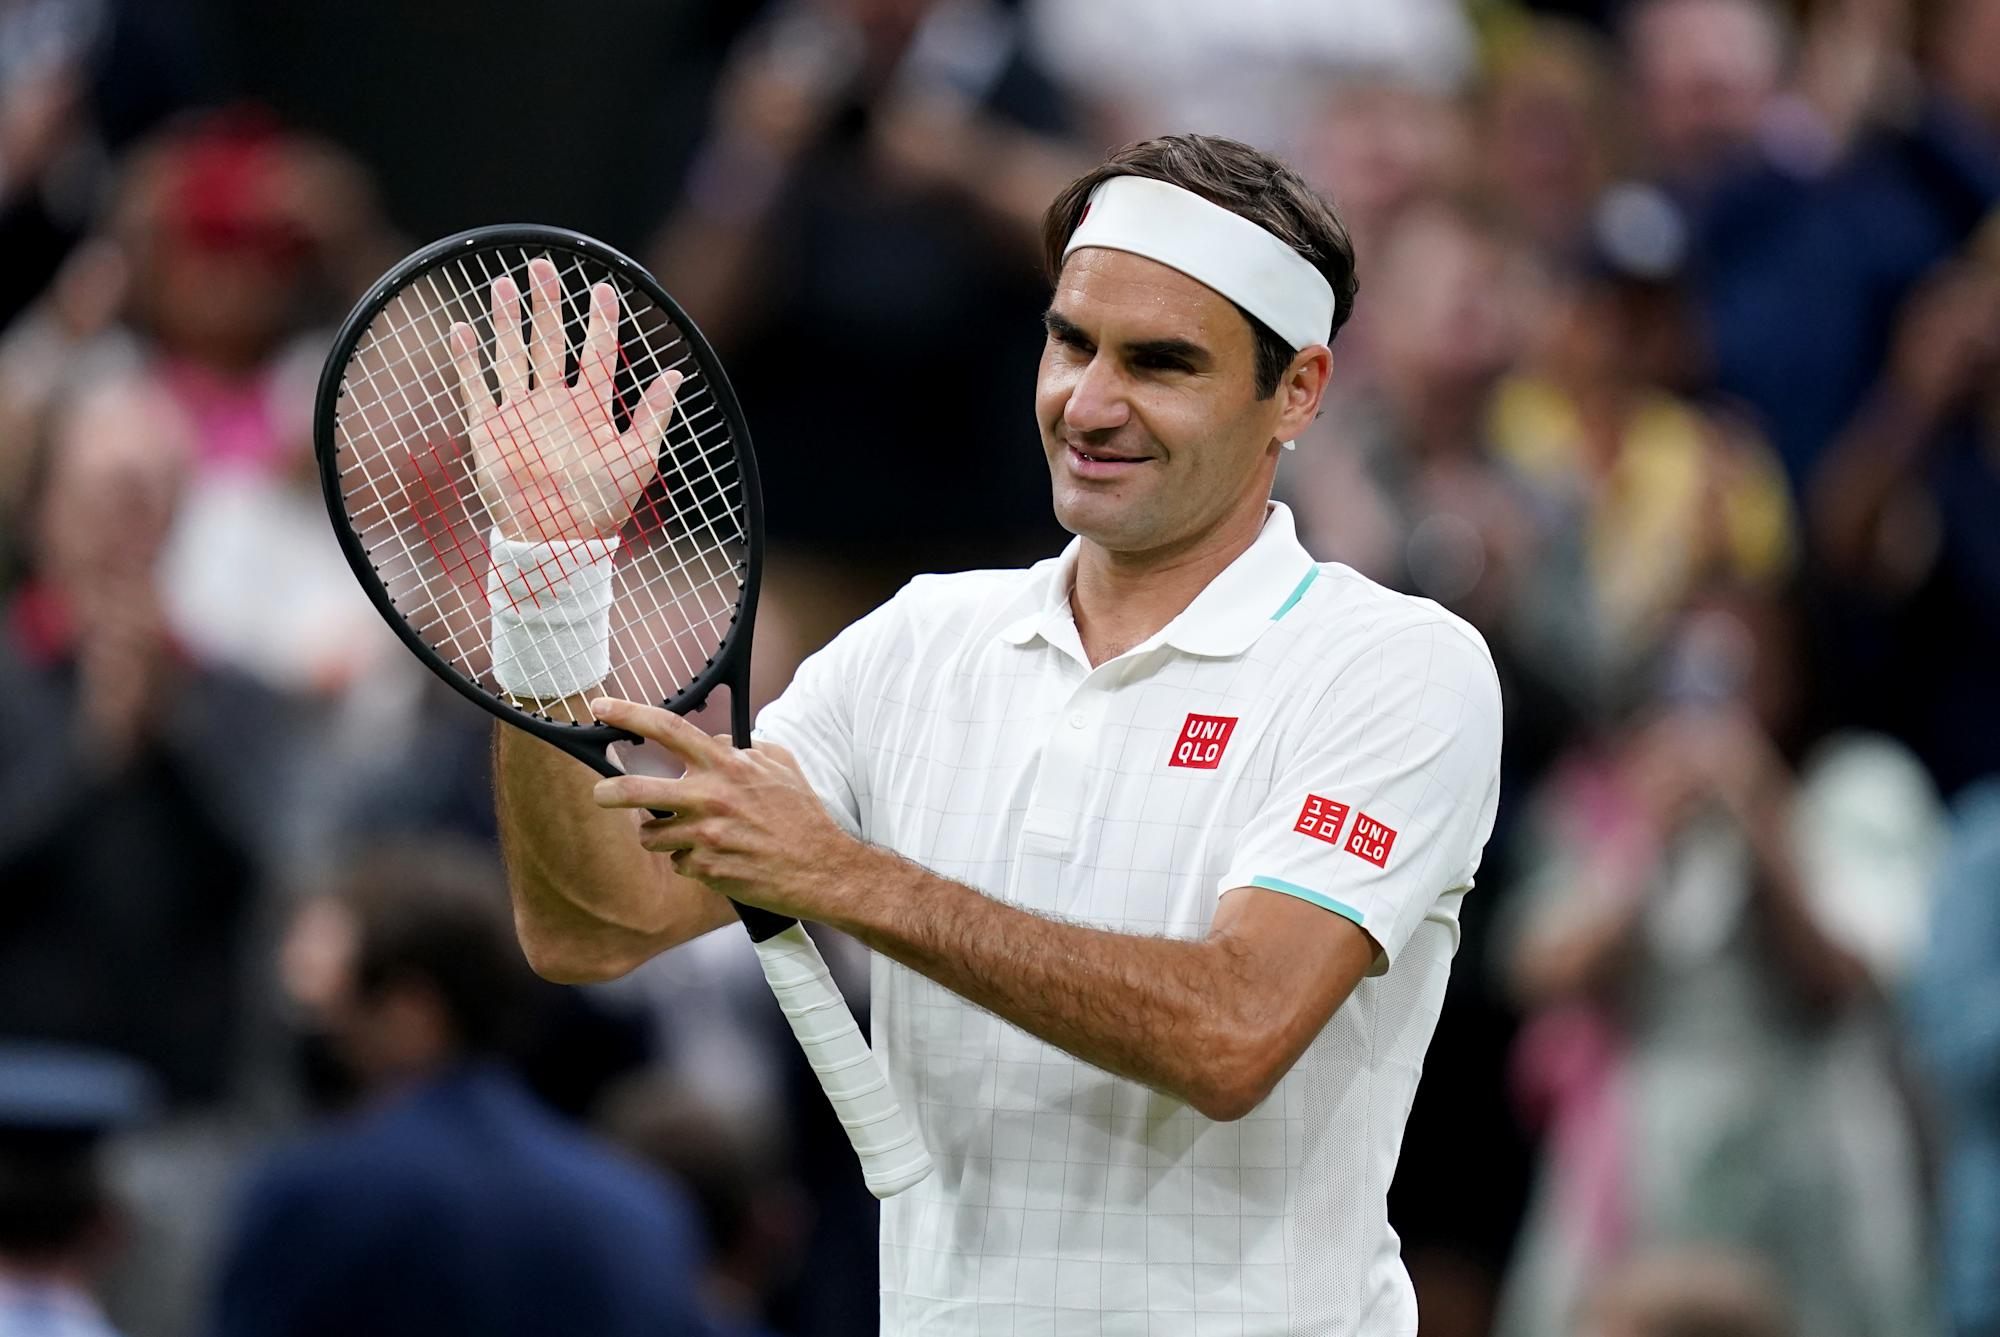 Injury setback forces Federer out of Olympics